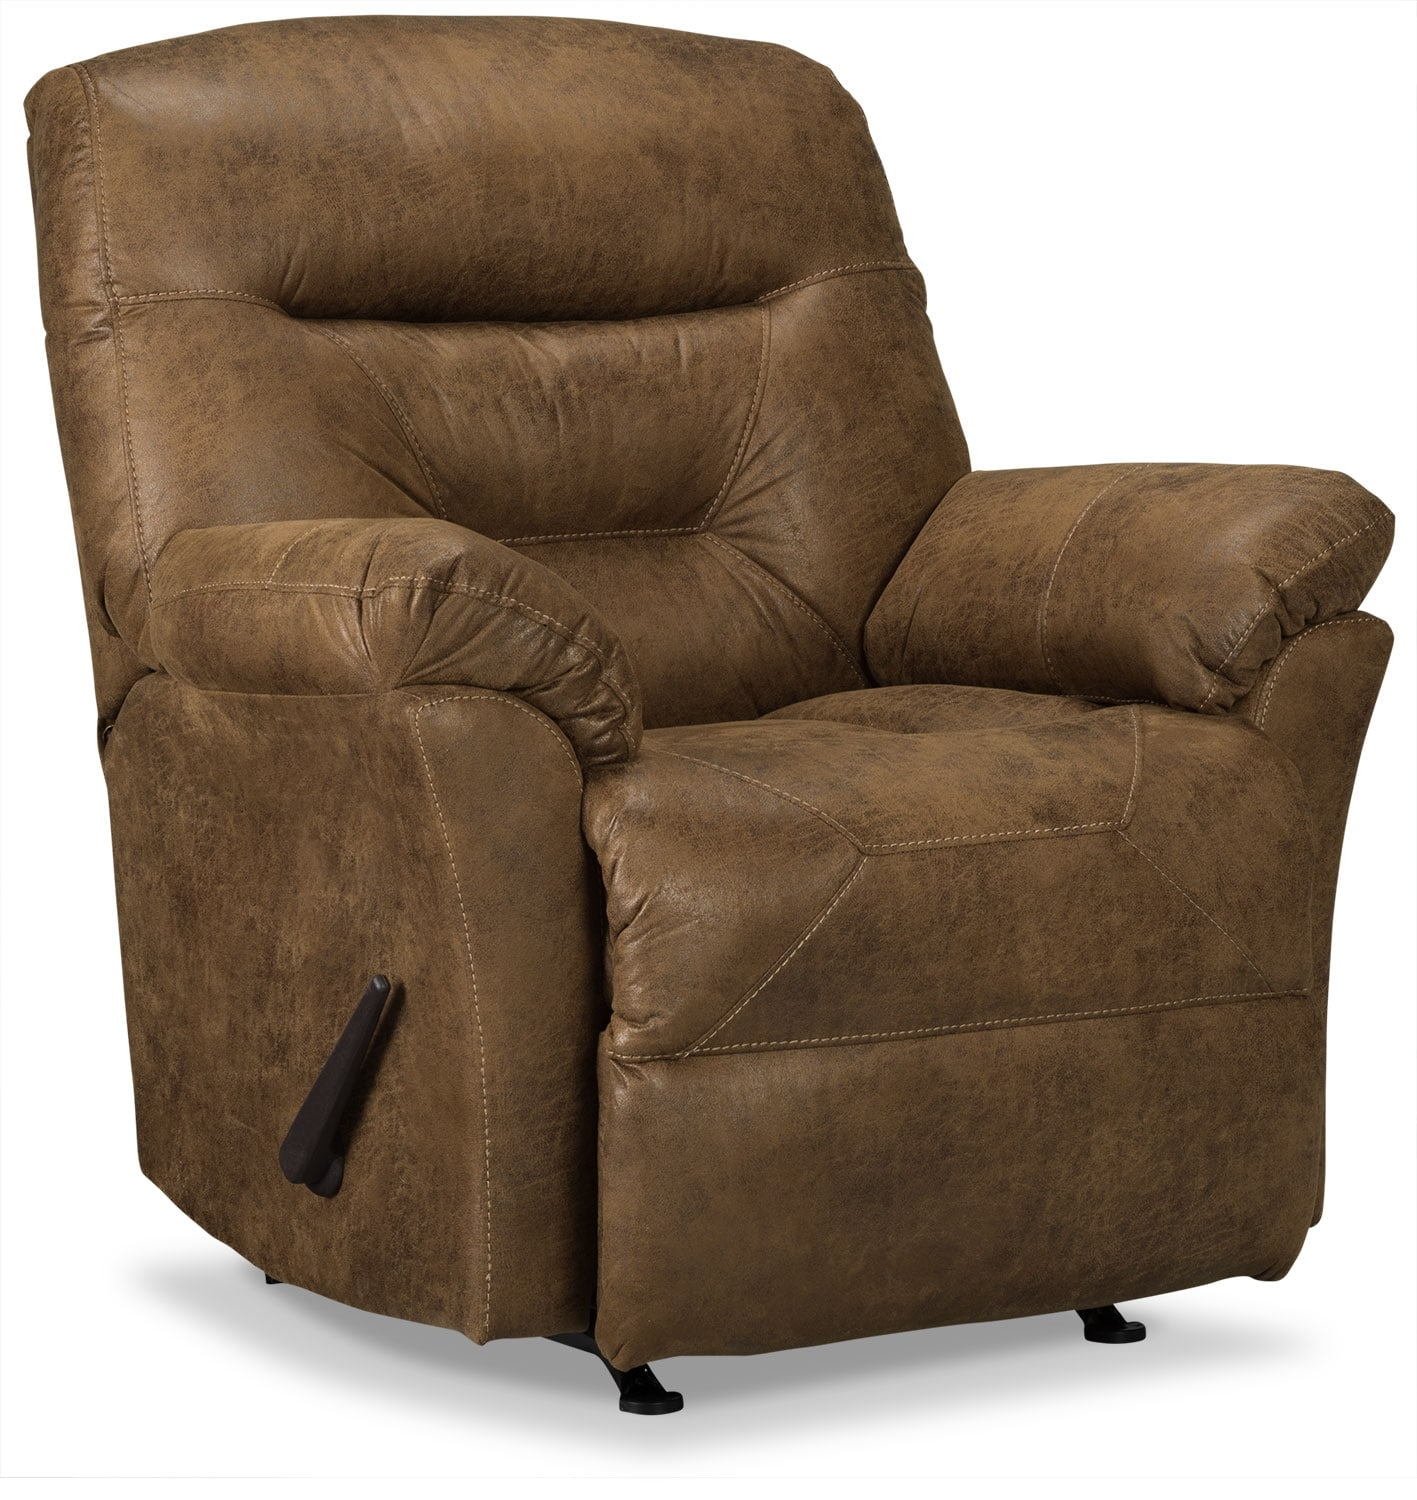 Designed2B Recliner 4579 Leather-Look Fabric Rocker Recliner - Stout